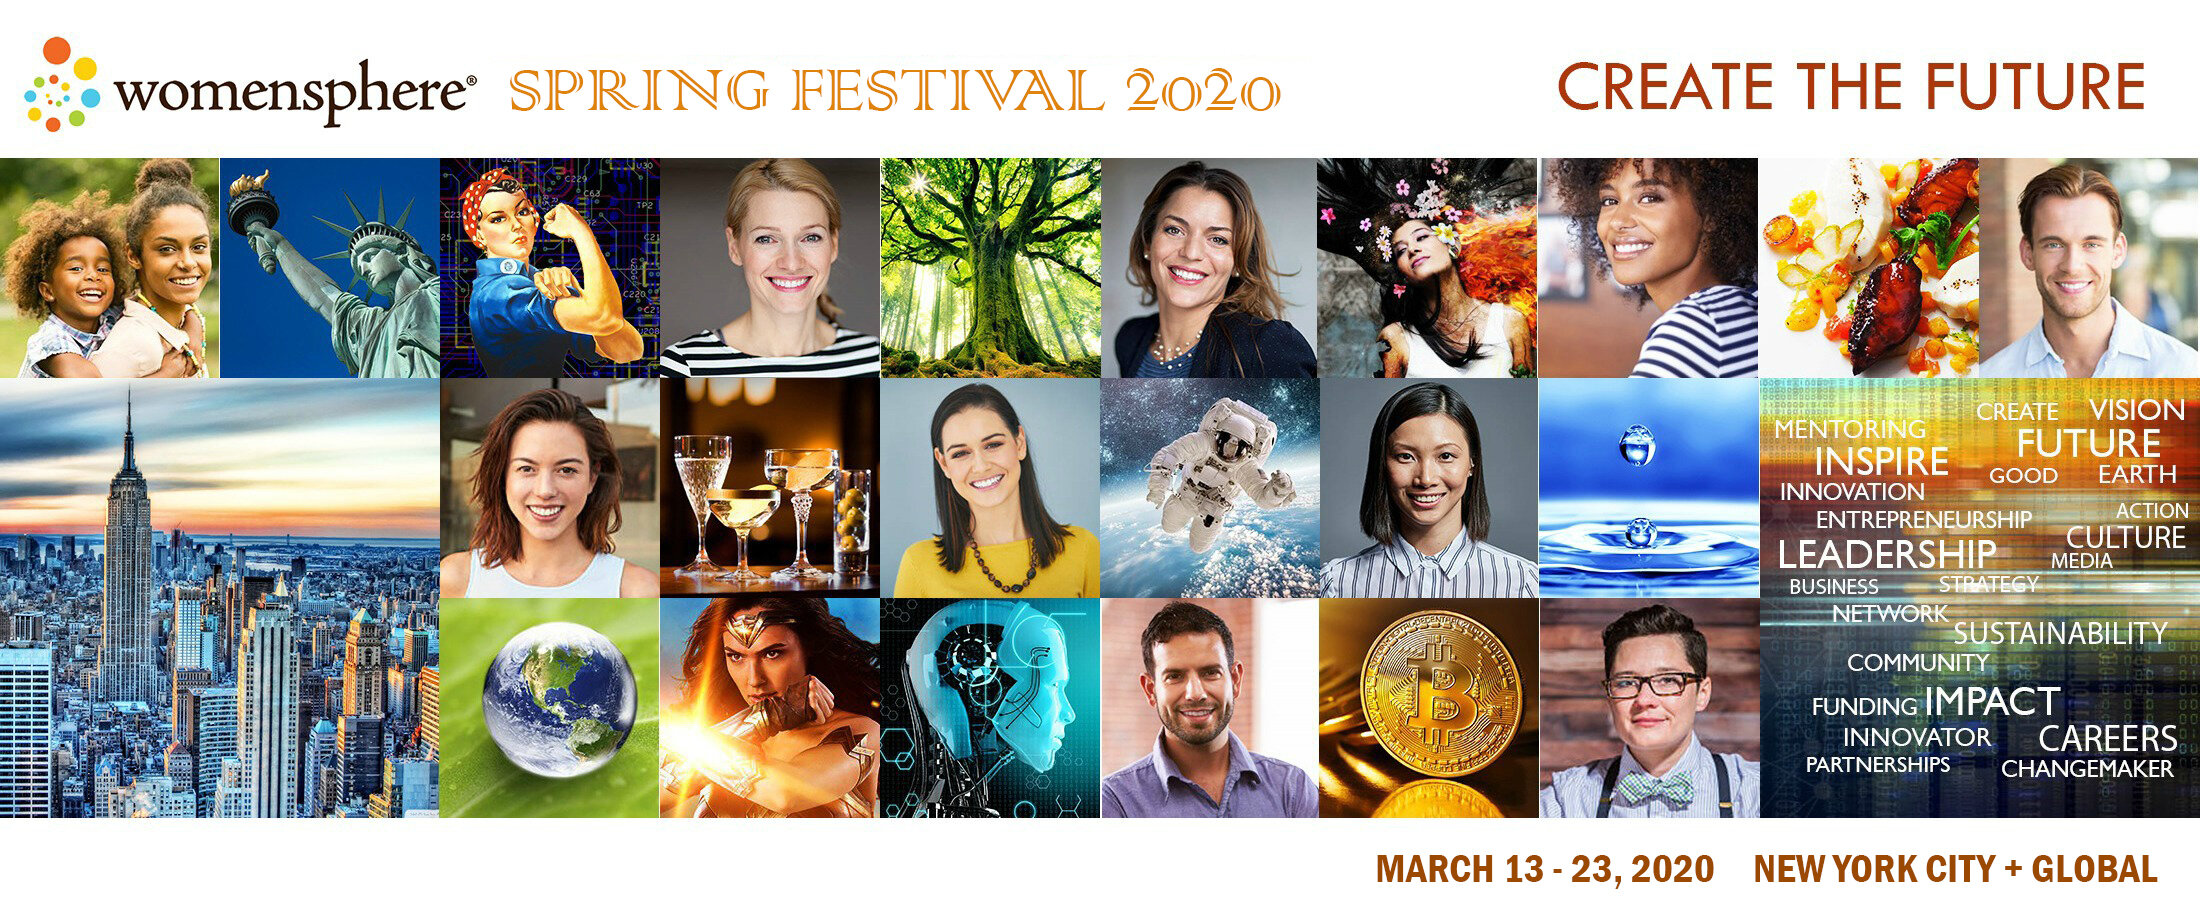 Womensphere Spring Festival March 2020.jpg